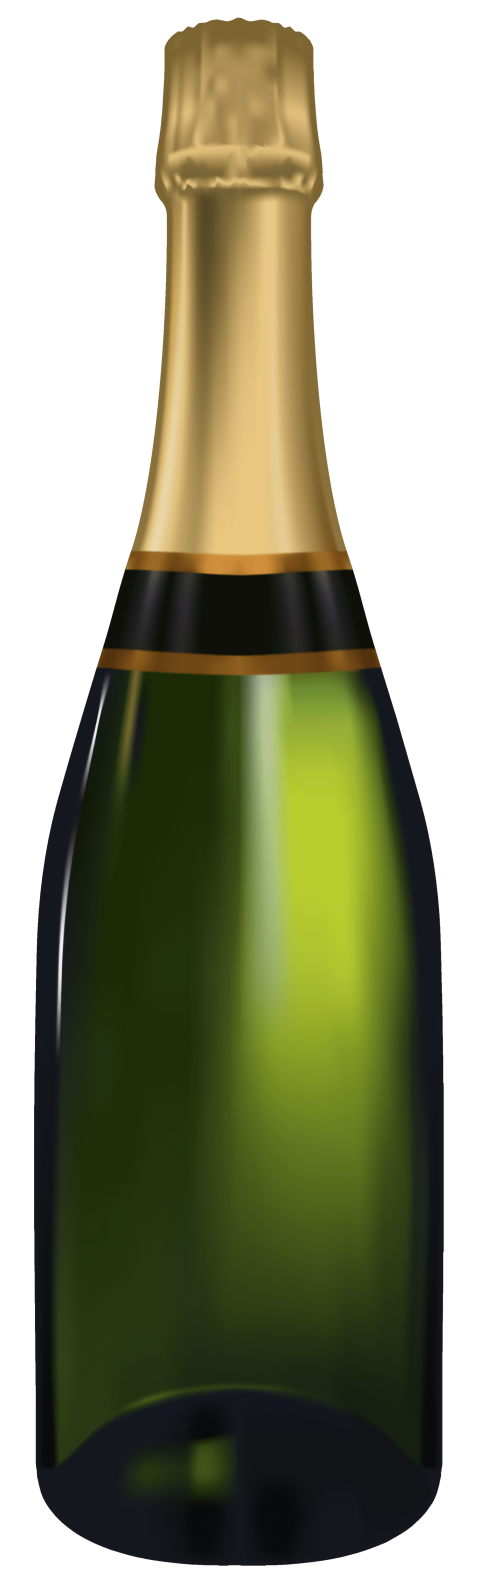 Png champagne bottle. Free images toppng transparent